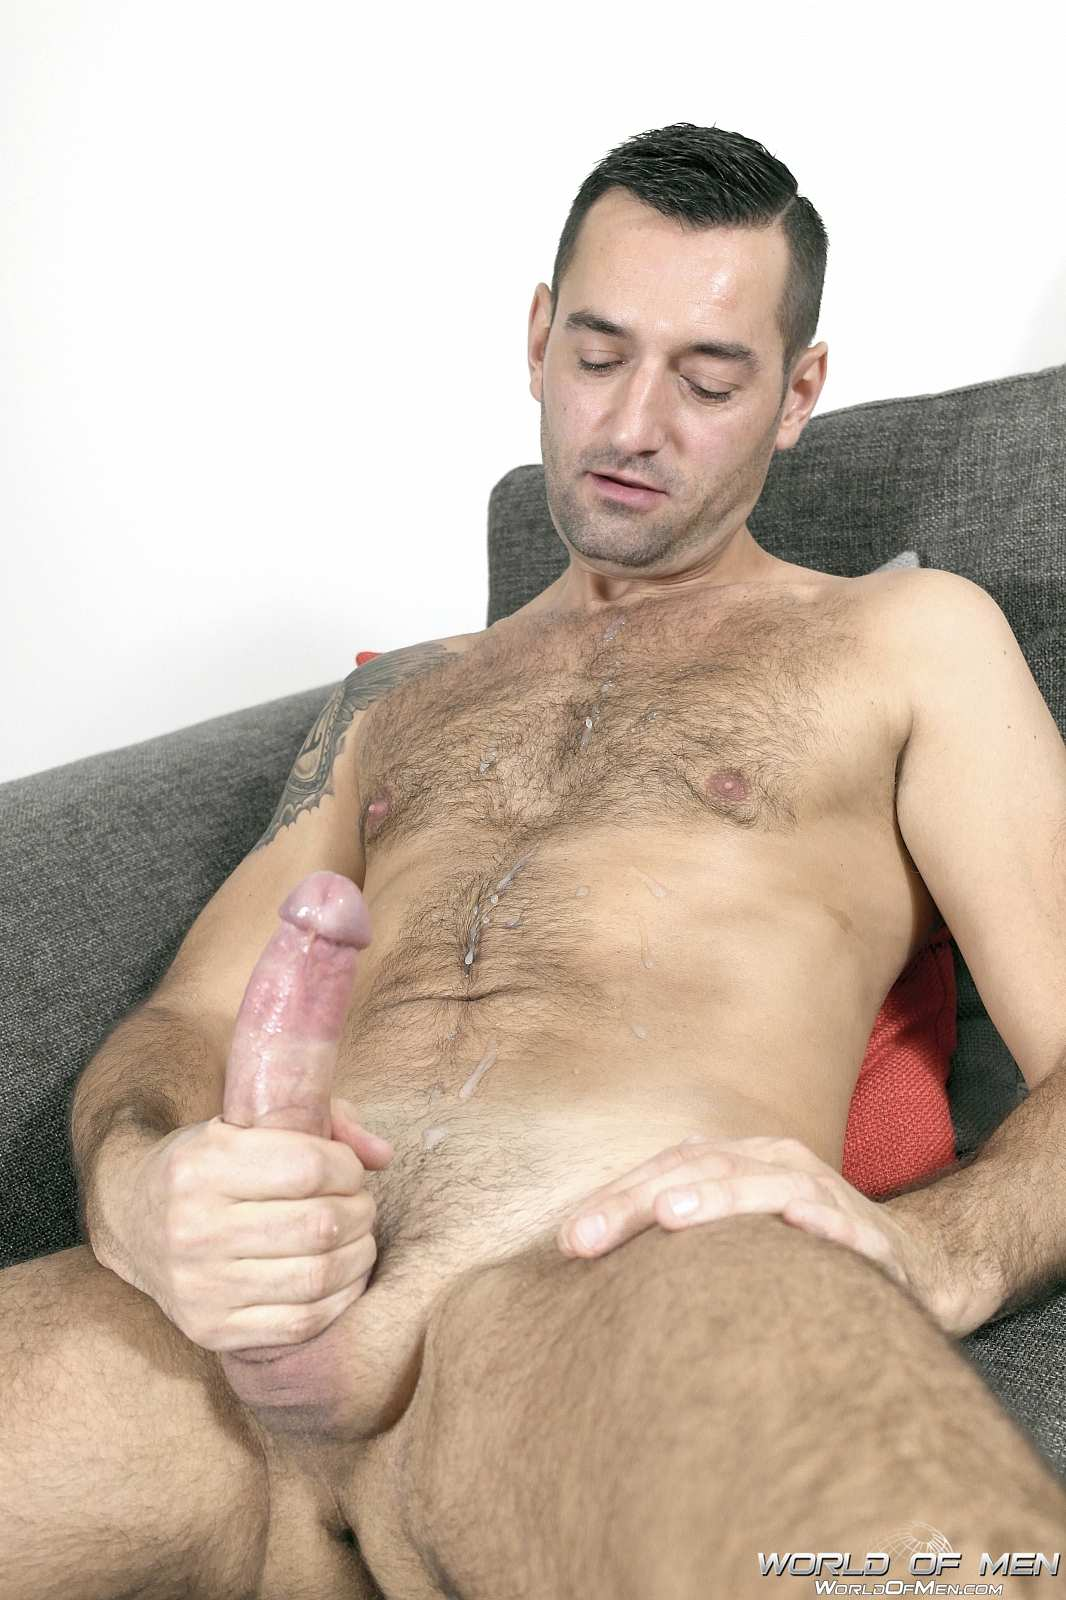 World Of Men Chris A'Dam Big Uncut Cock Jerk Off Masturbation  Amateur Gay Porn 14